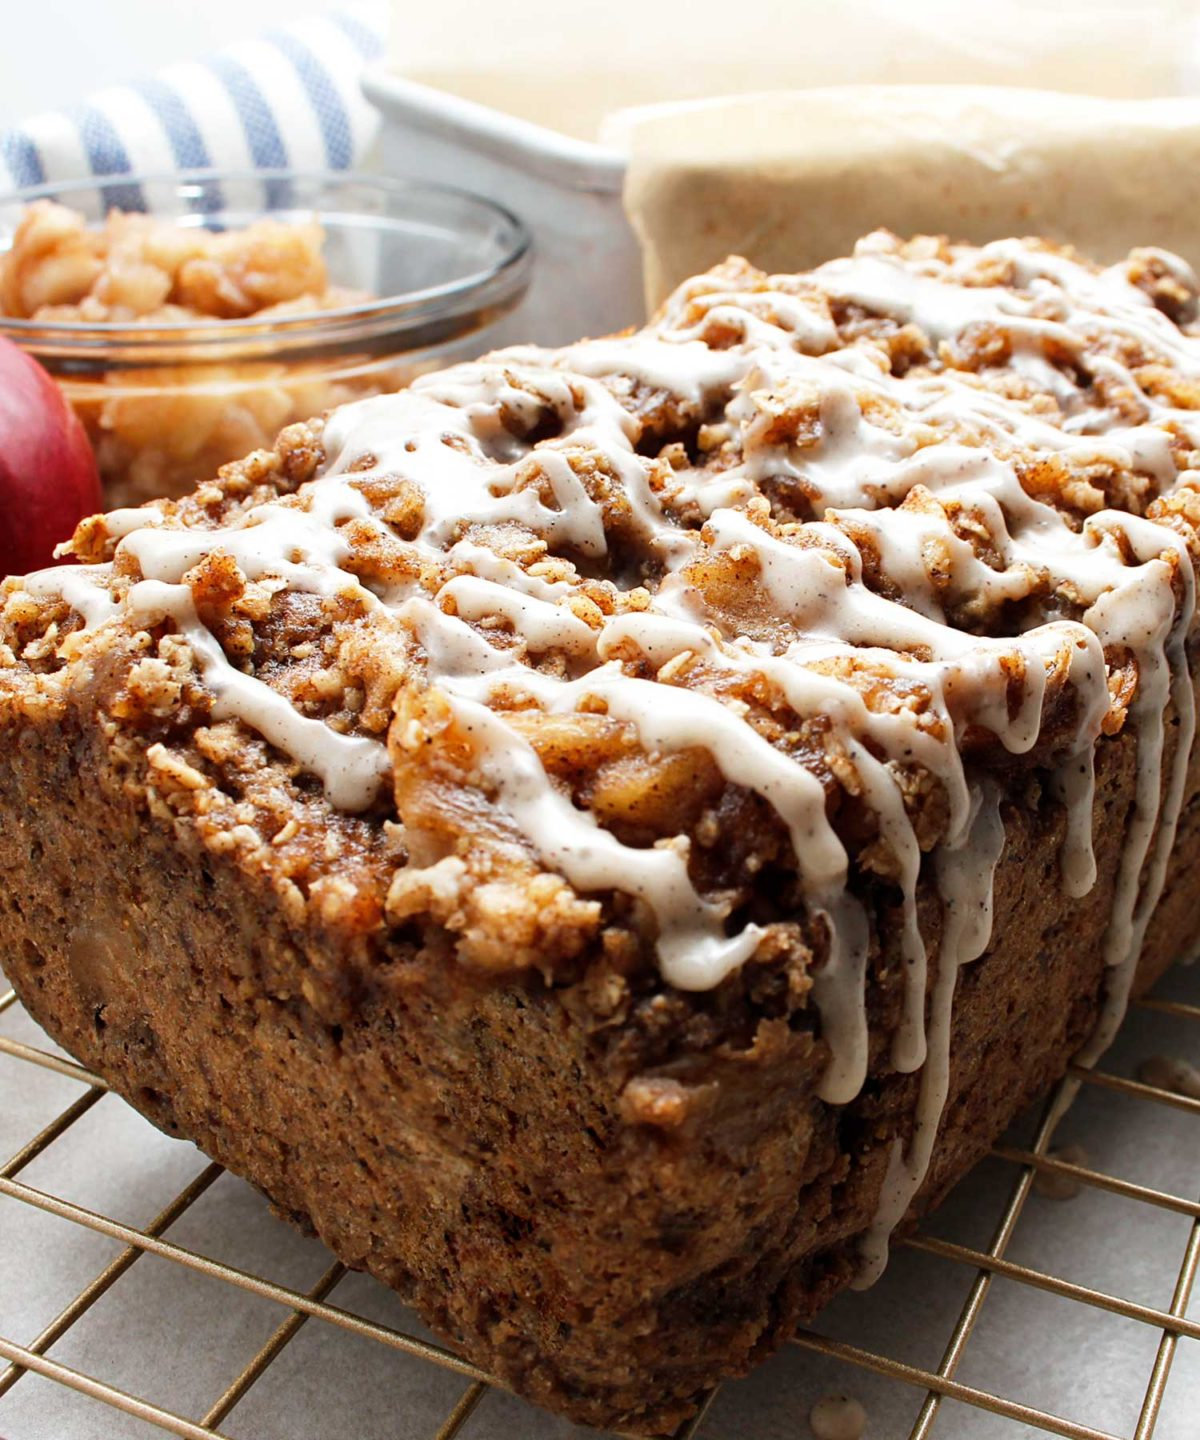 A freshly baked loaf of gluten-free vegan Apple Crisp Bread with a perfect drizzle of sugar and spice.